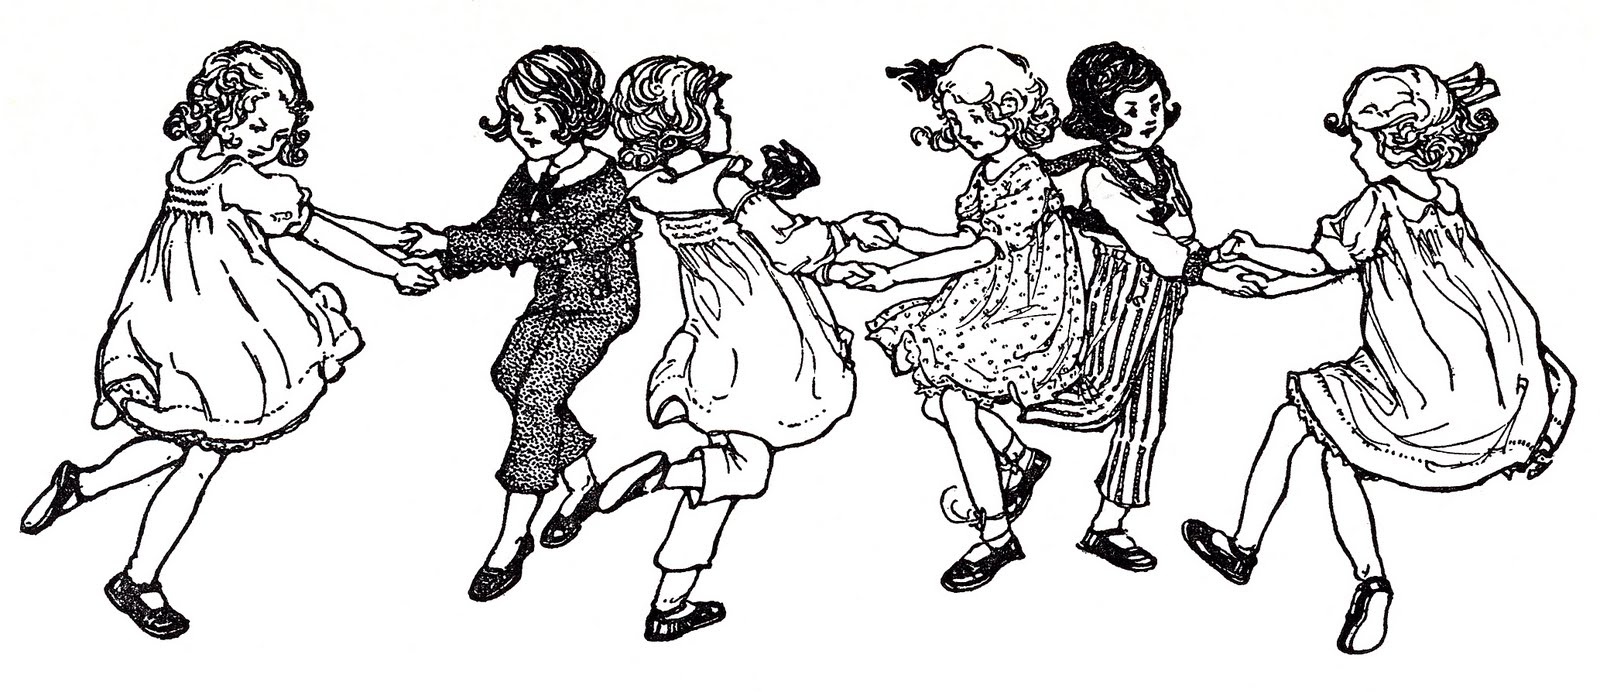 Vintage kids bug clipart picture freeuse stock Vintage Image - Children Dancing - Swedish Song - The ... picture freeuse stock